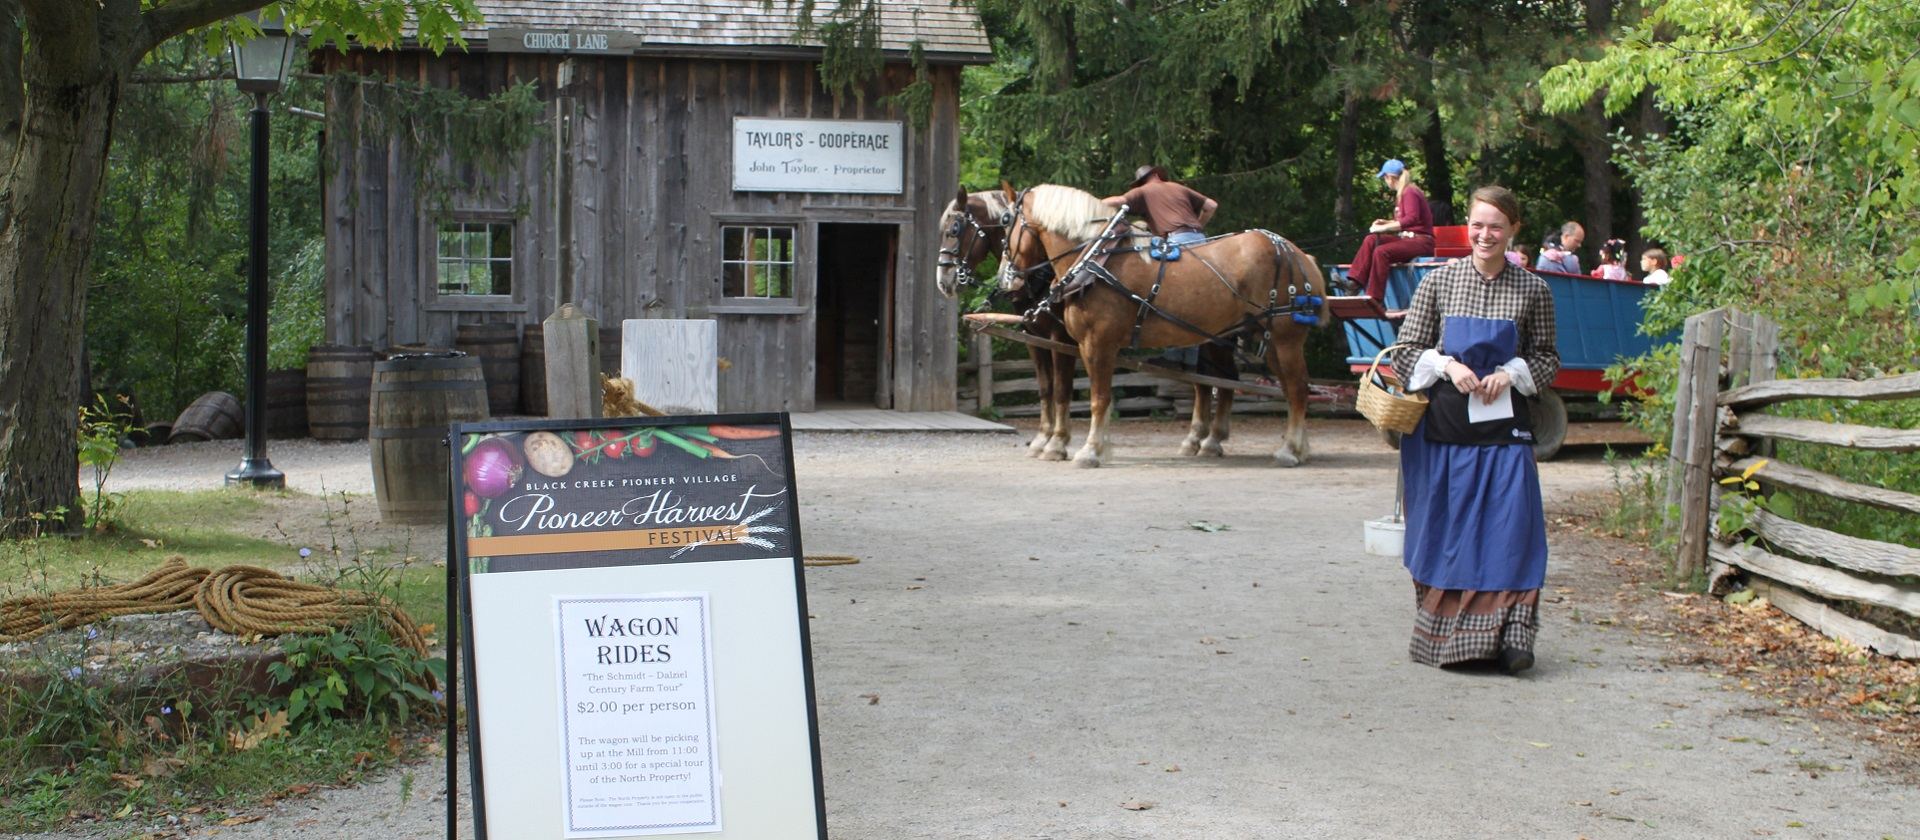 visitors to Black Creek Pioneer Village enjoy a horse drawn wagon ride during the Pioneer Harvest Festival